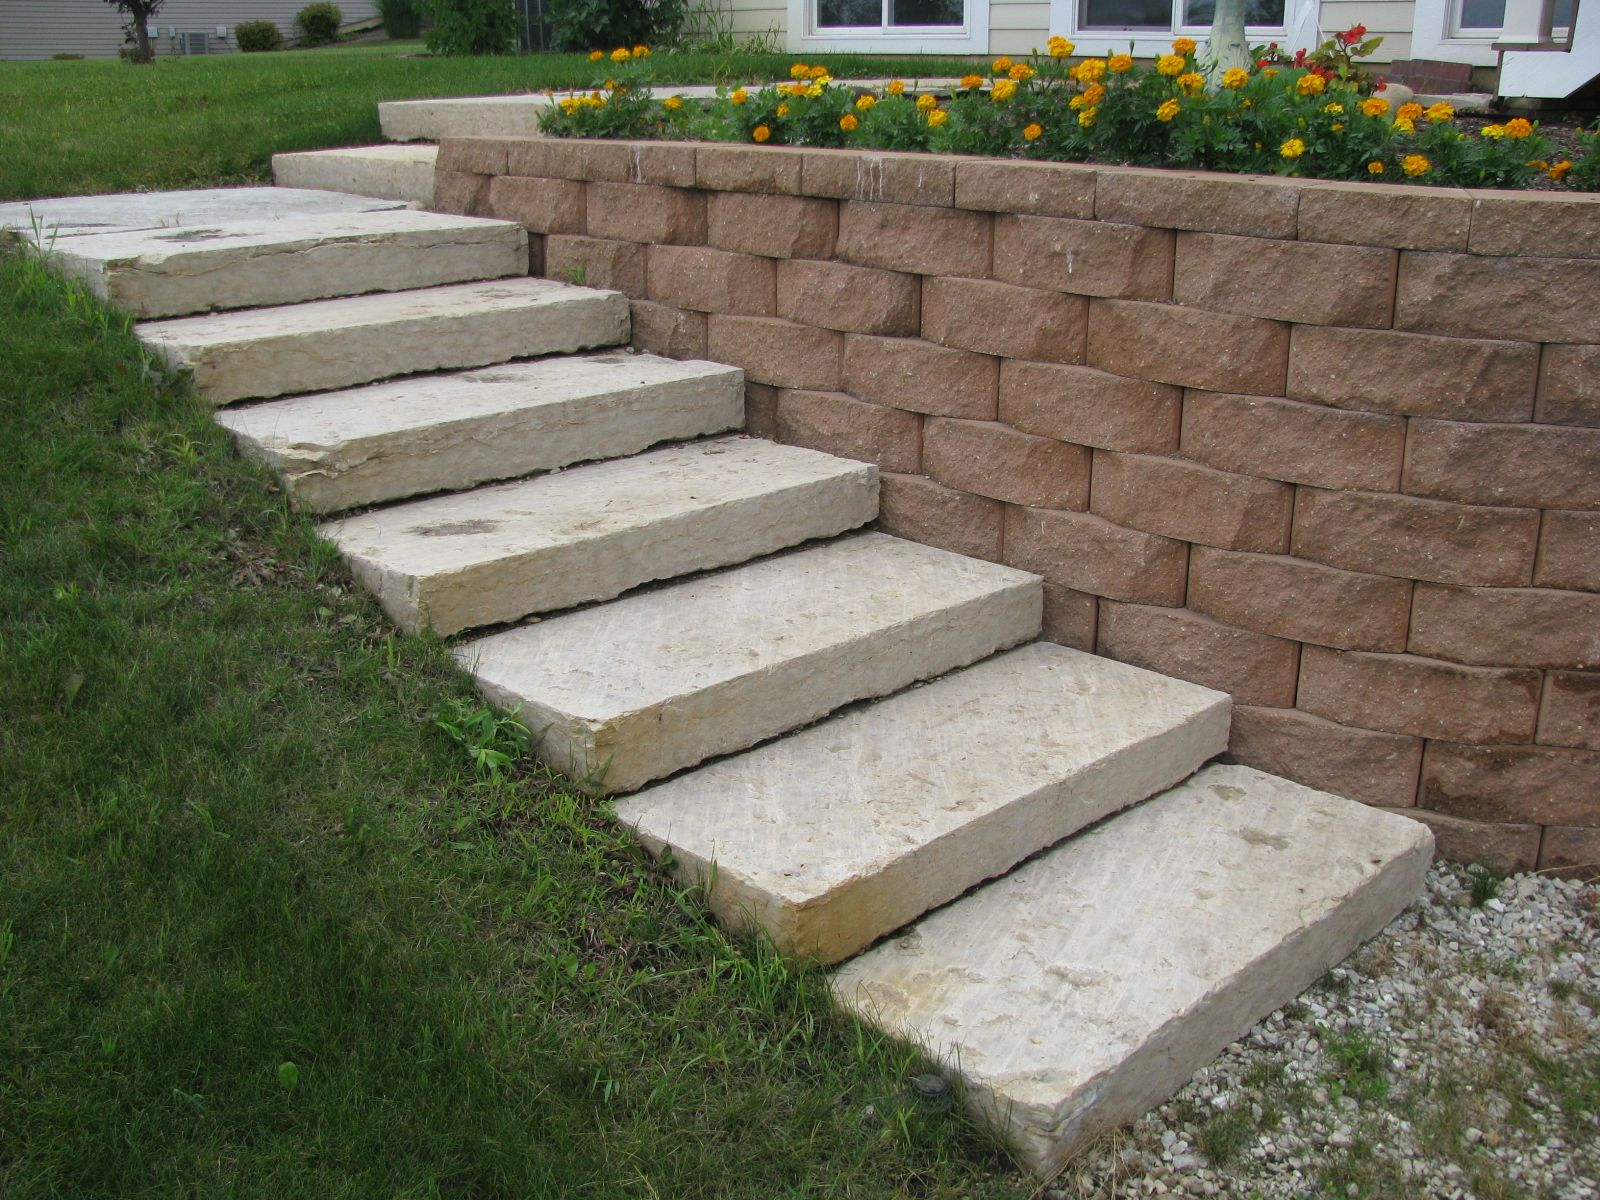 Garden Block Wall Ideas retaining wall ideas cinder block retaining wall concrete planter boxes garden wall ideas If Your Yard Slopesthis Is The Perfect Solution A Block Retaining Wall And